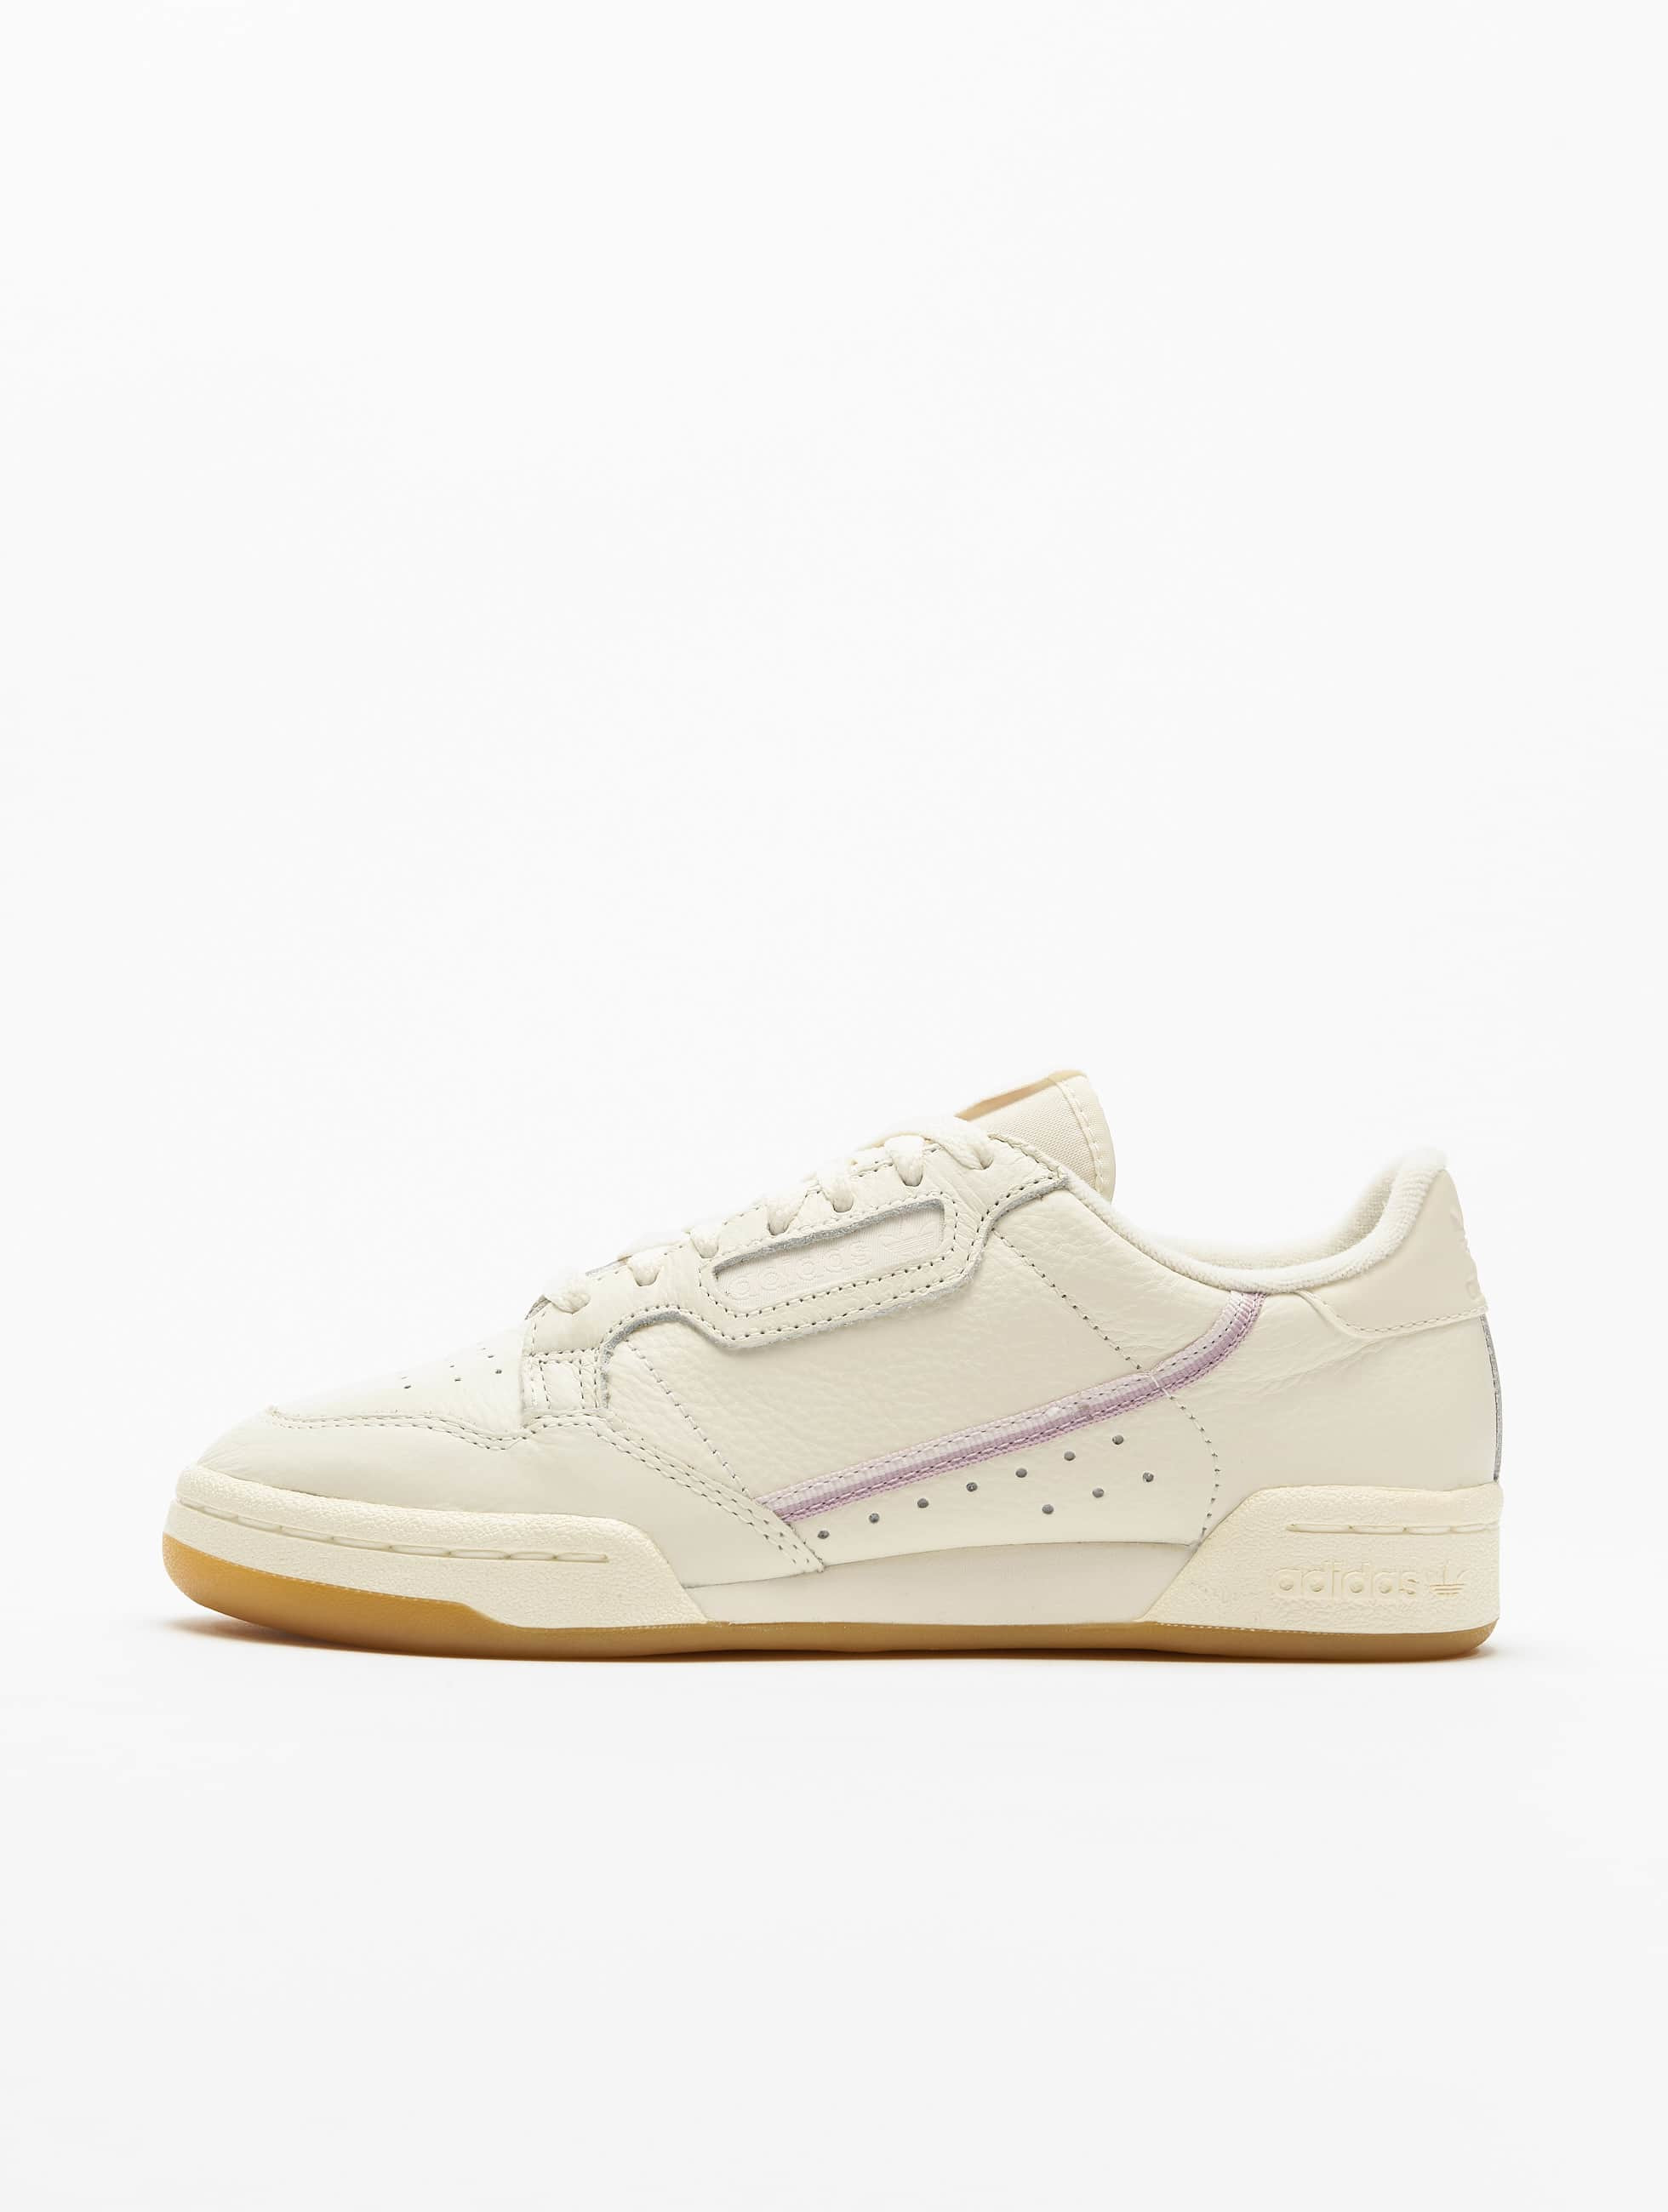 Adidas Originals Continental 80 W Sneakers Off WhiteOrchid Tint S18Soft Vision